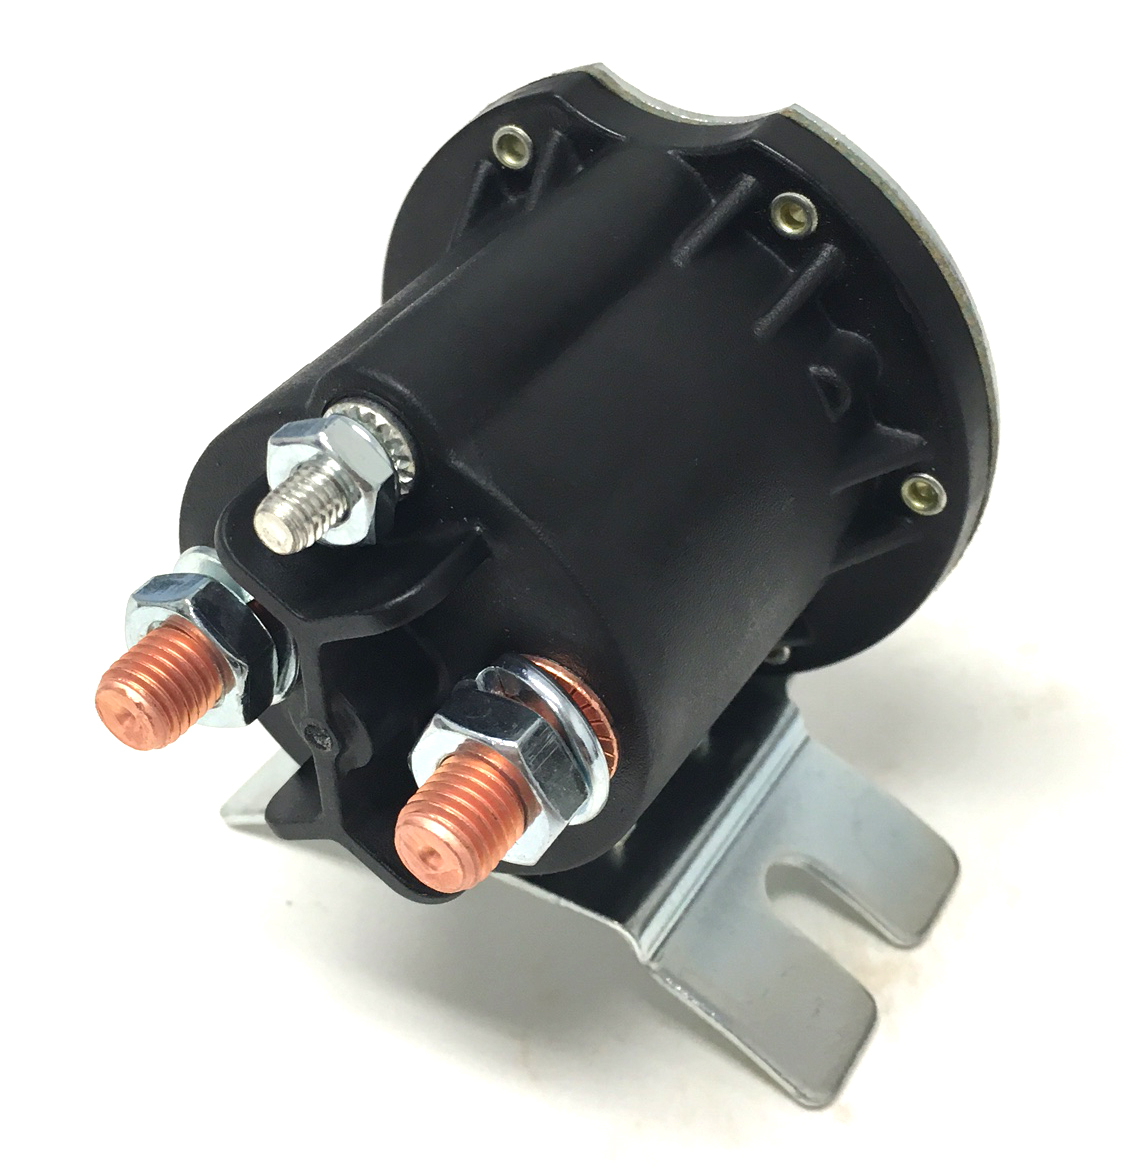 MTE Hydraulic replacement parts: solenoid